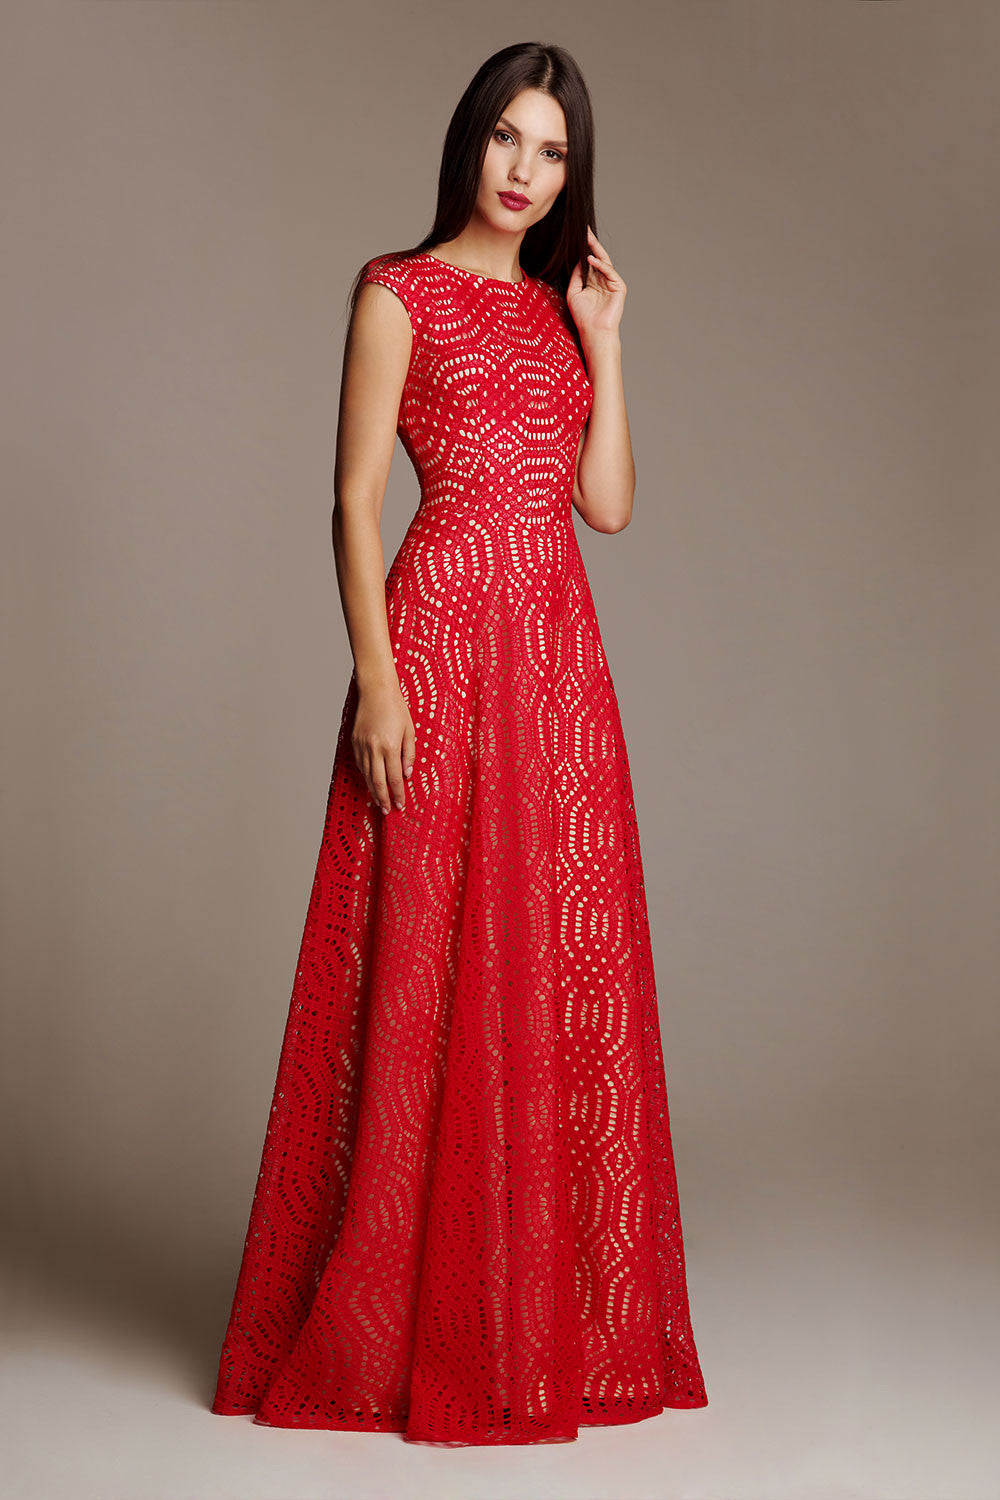 Red lace evening dress Laureen Rouge – Liina Stein